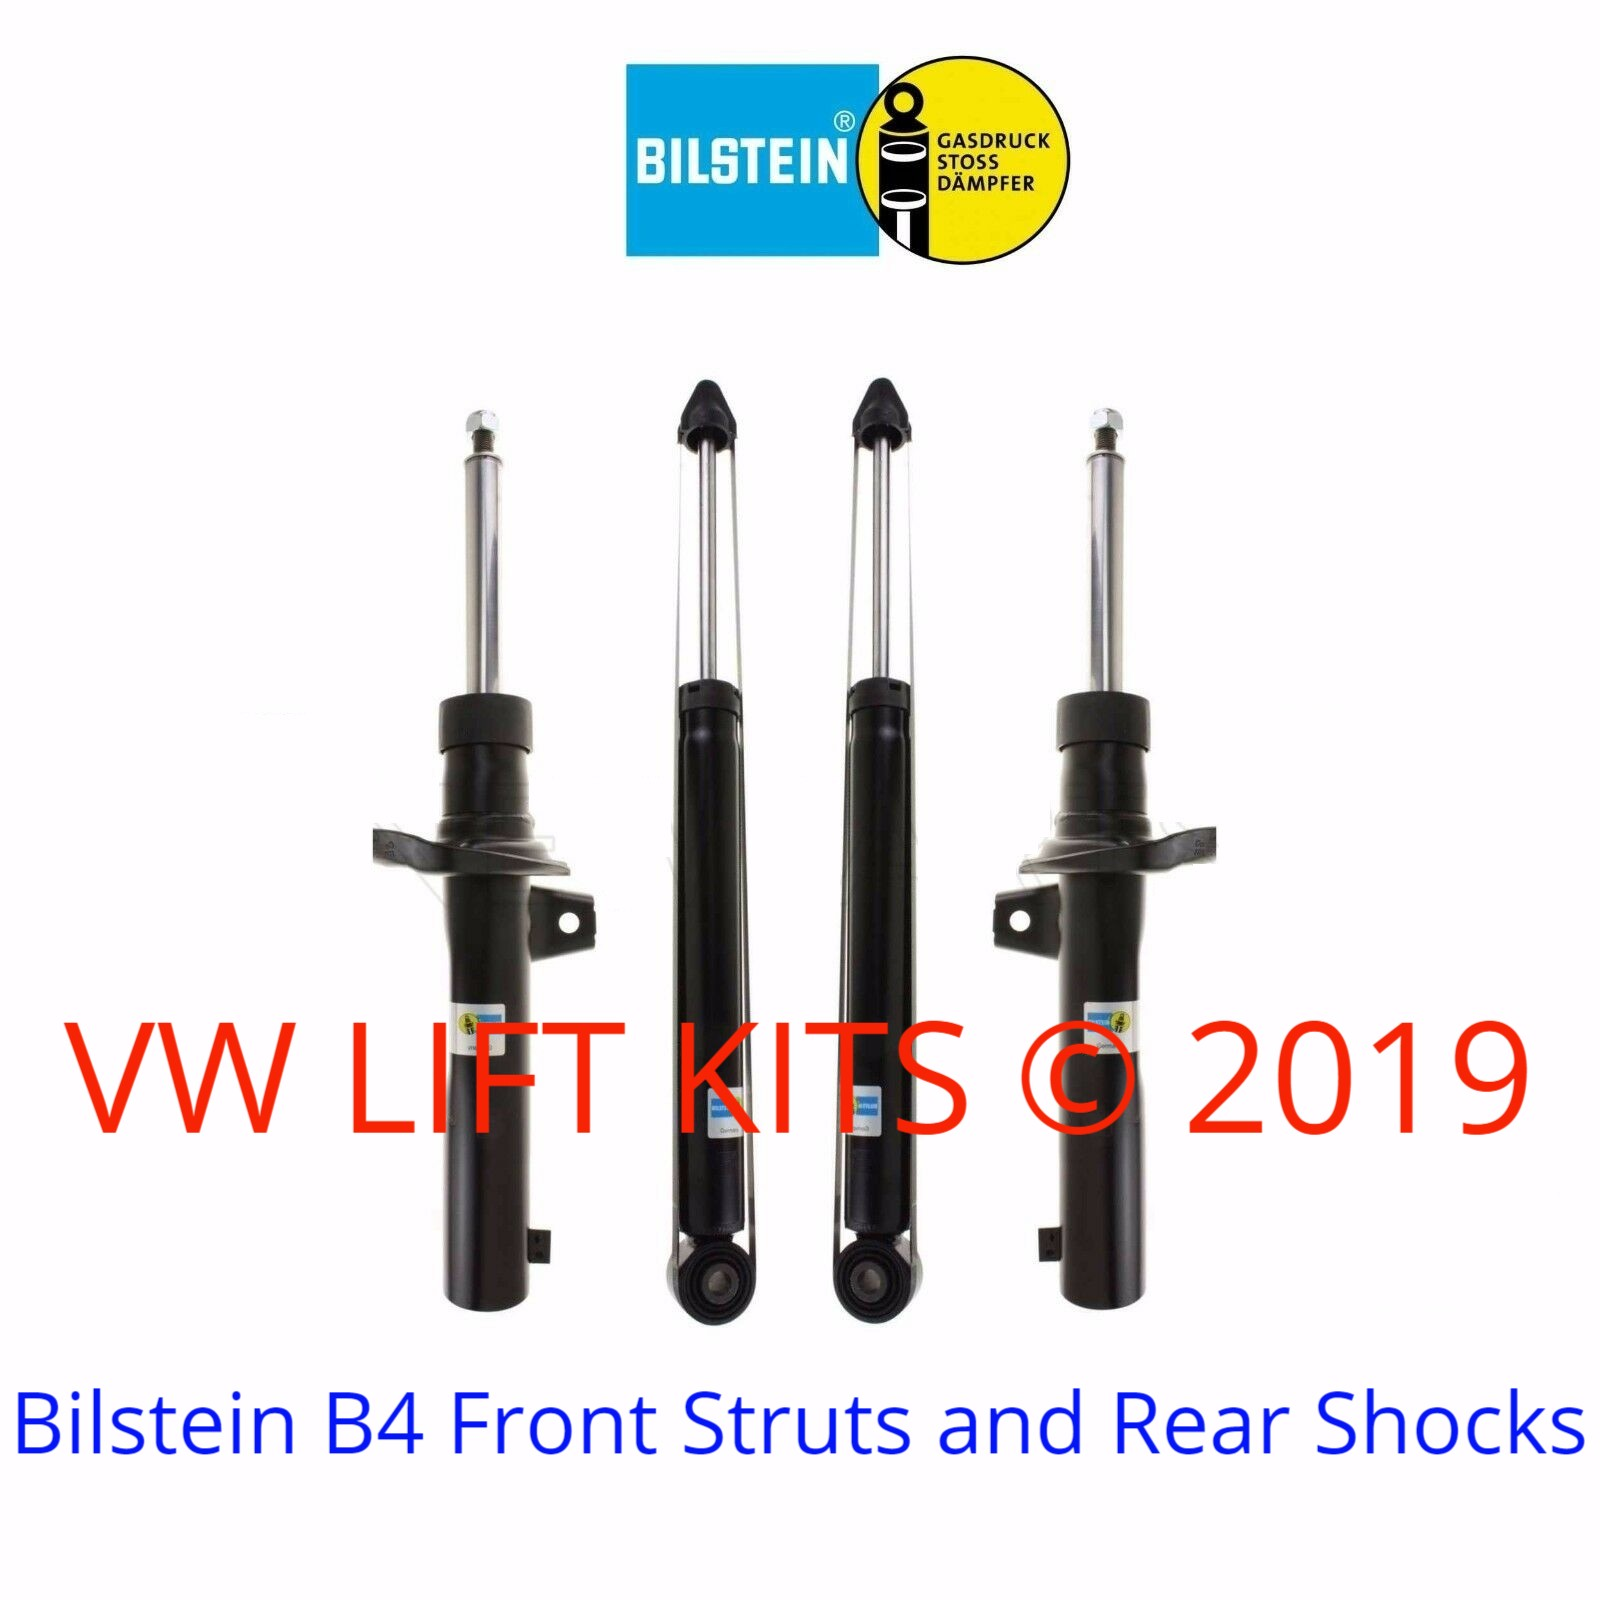 These twin tube Bilstein B4 front struts & rear shocks provide a firmer ride to work with the additional lift.